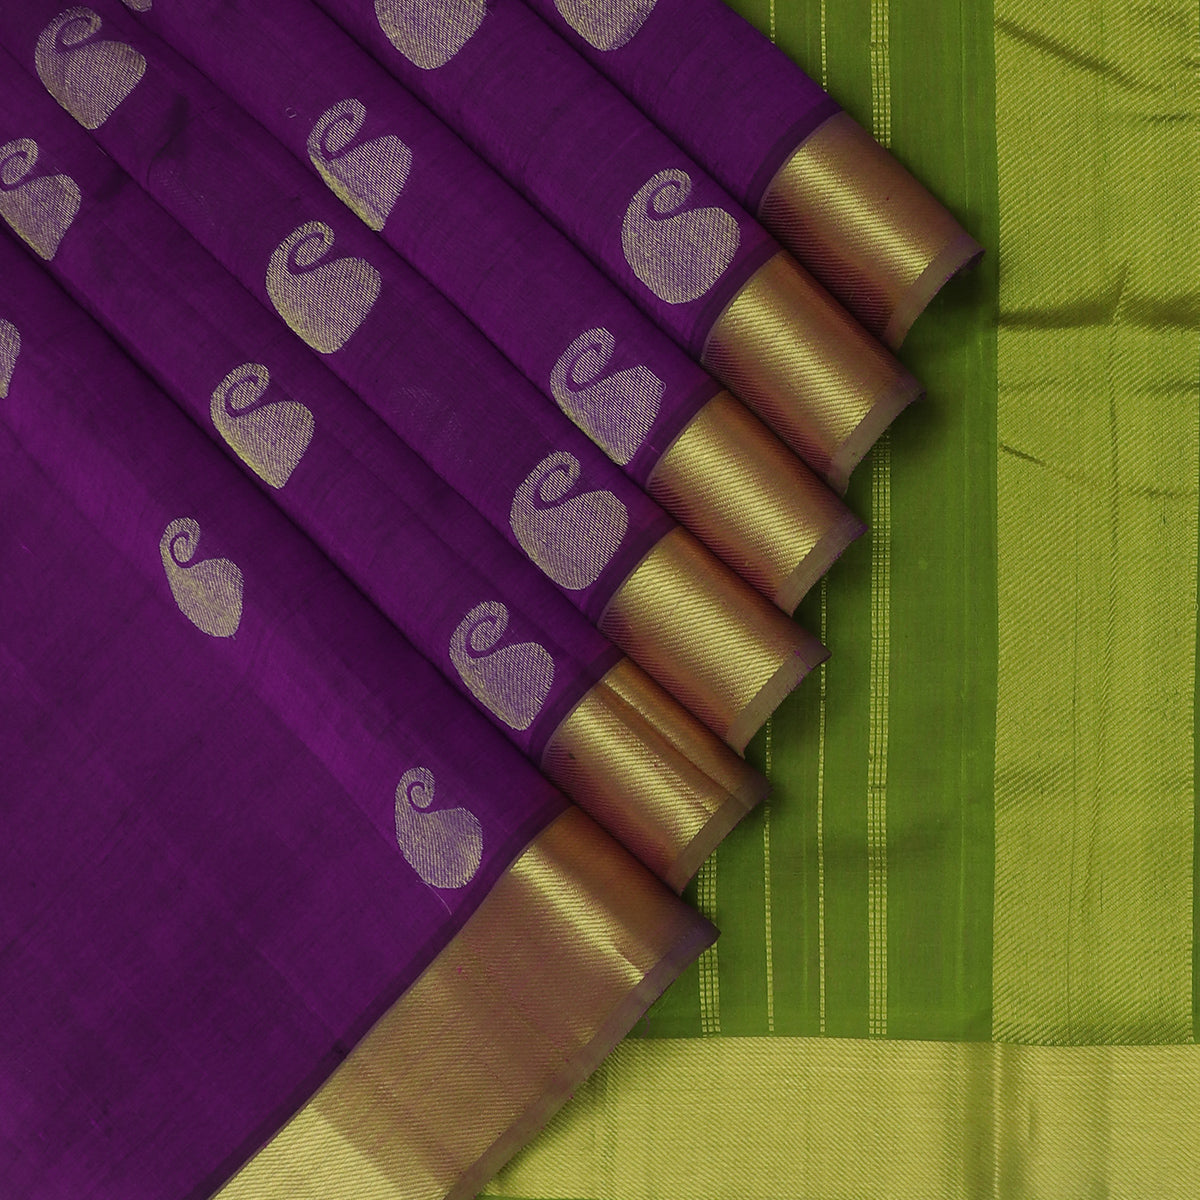 Silk Cotton Saree Violet with Mango Buttas and zari border 9 yards